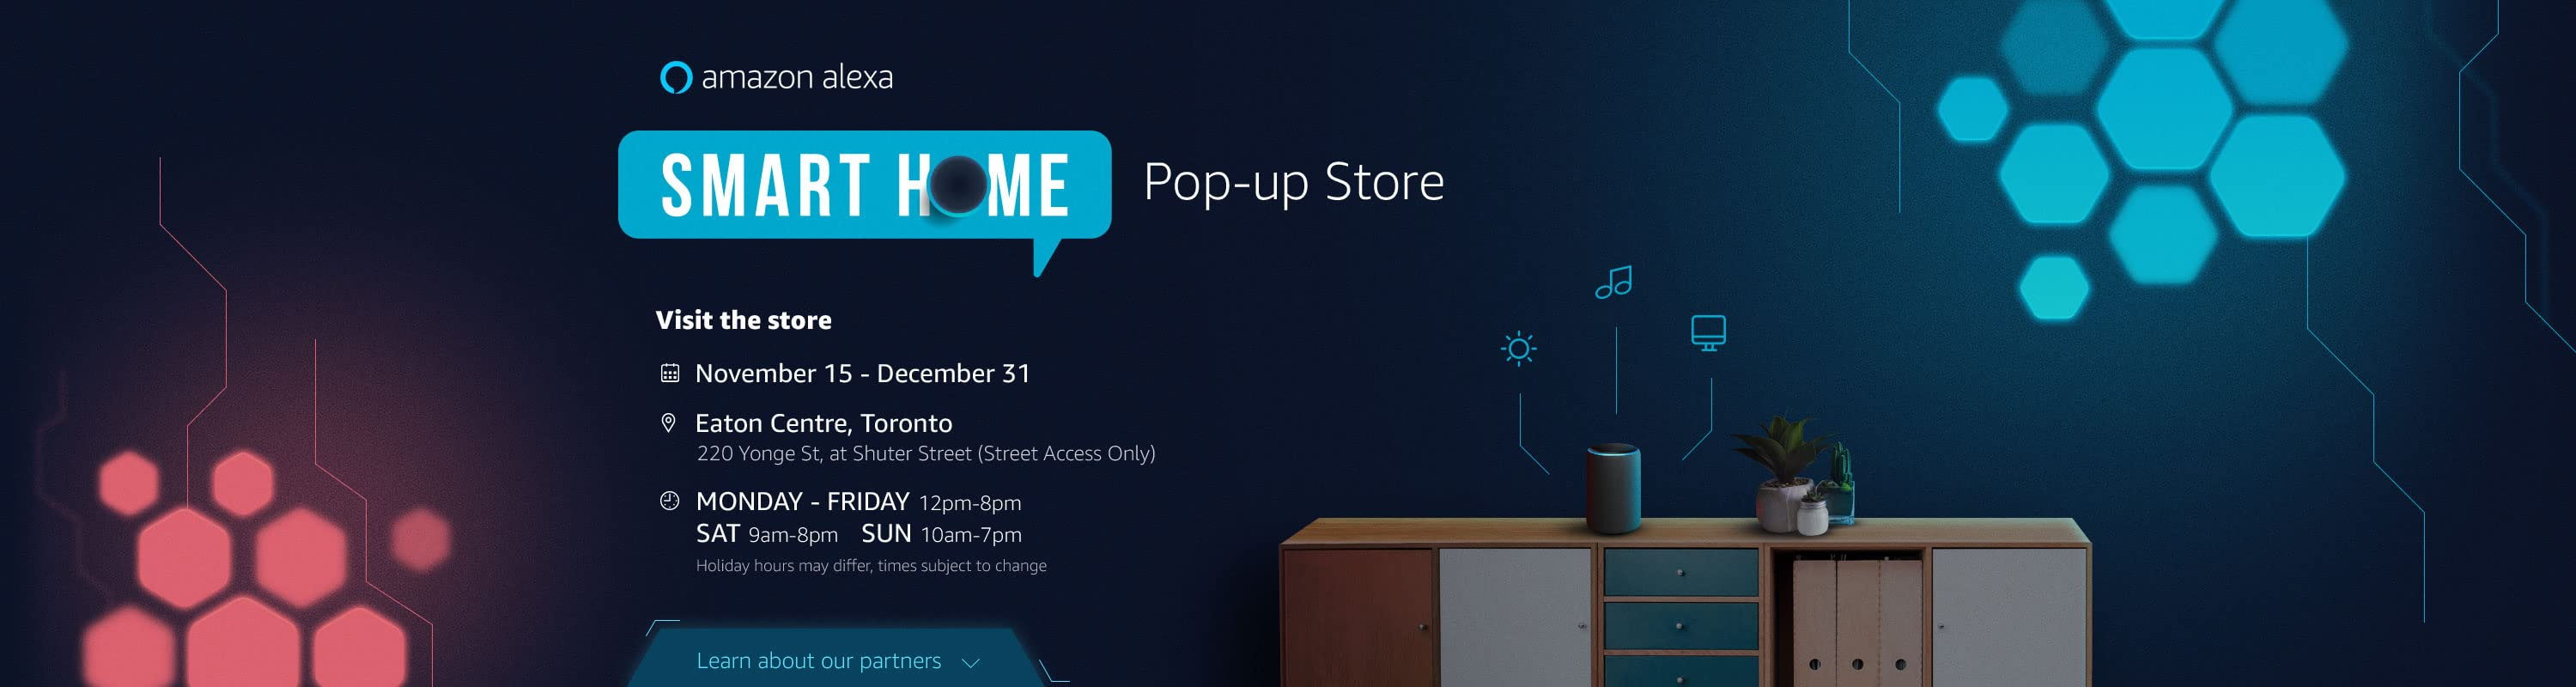 Amazon Alexa - Smart Home Pop-up Store  Visit the store November 15th to December 31st at Eaton Centre.  Learn about our partners below.